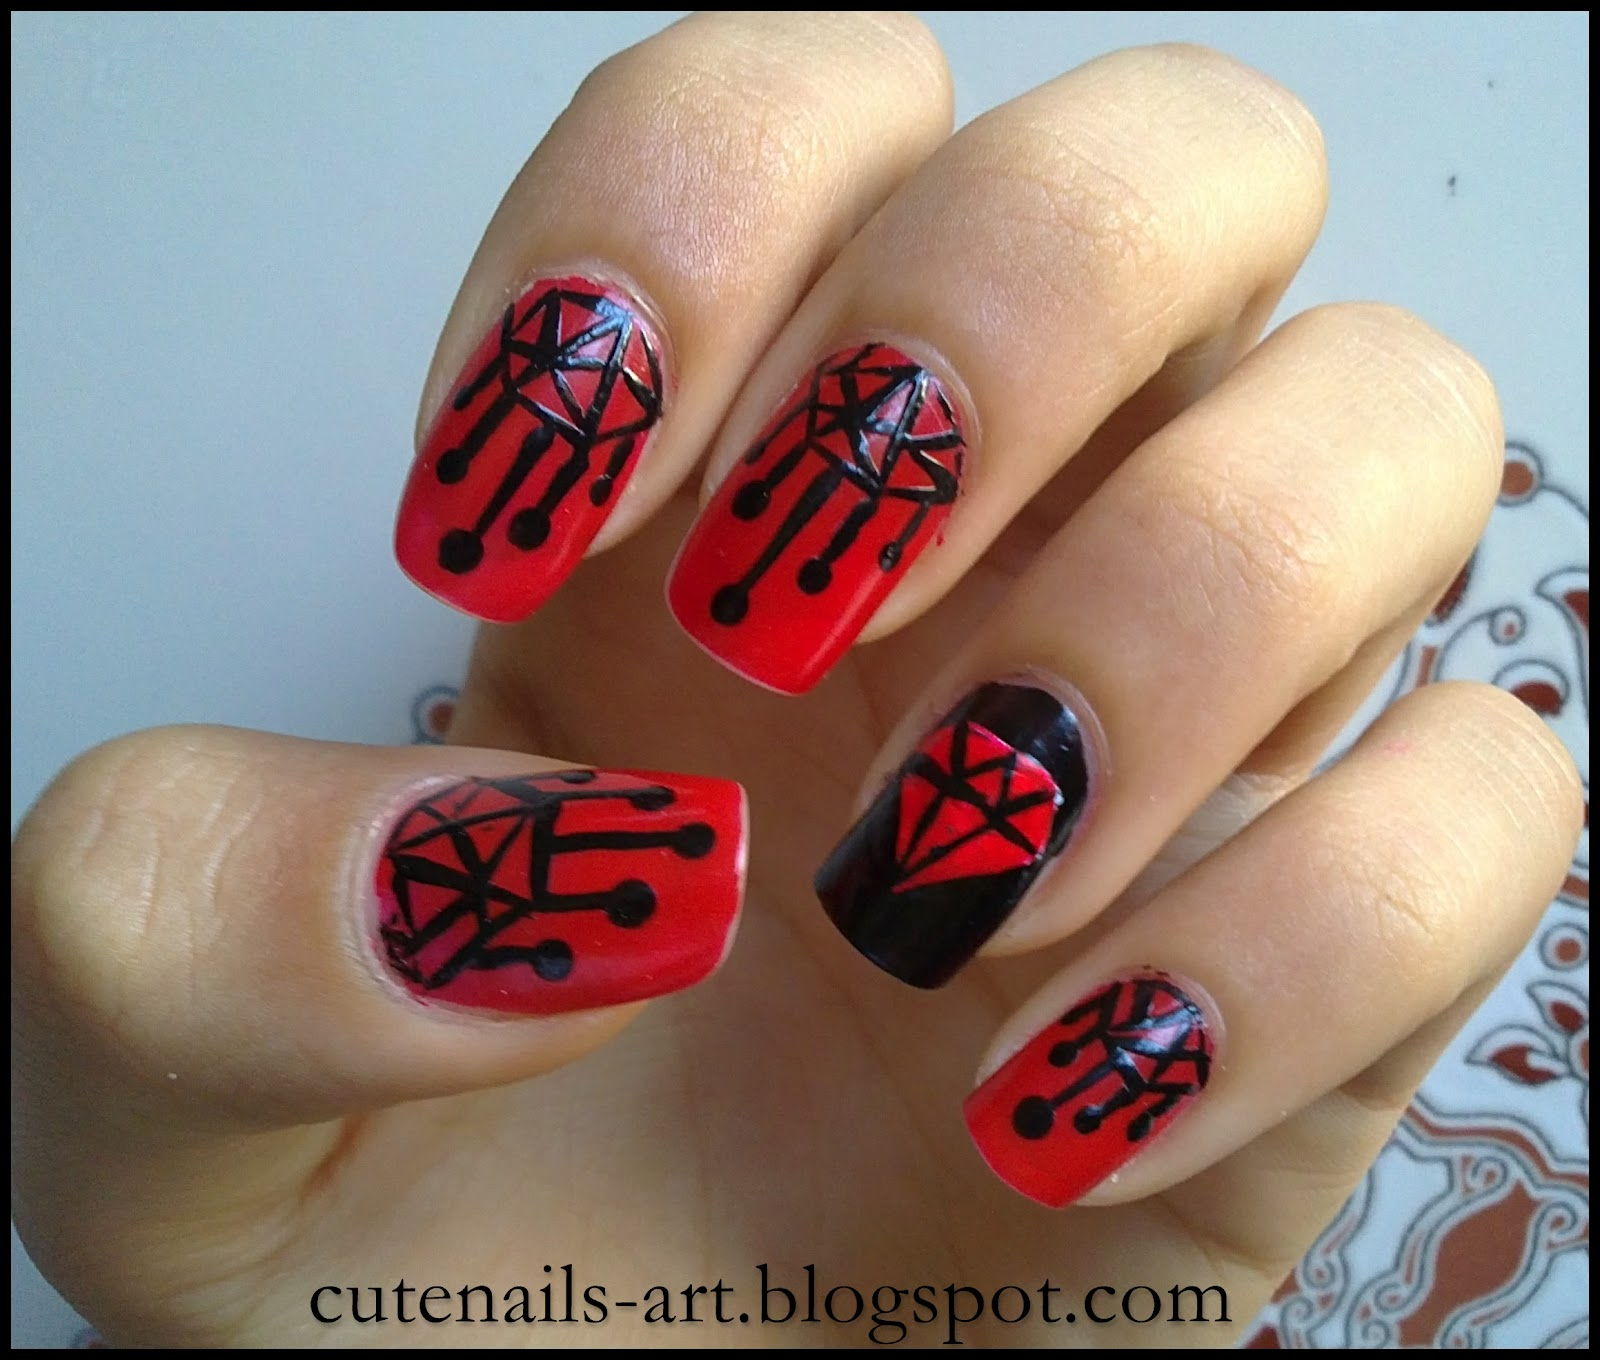 Red Nail Art: Cutenails-art: Août 2012